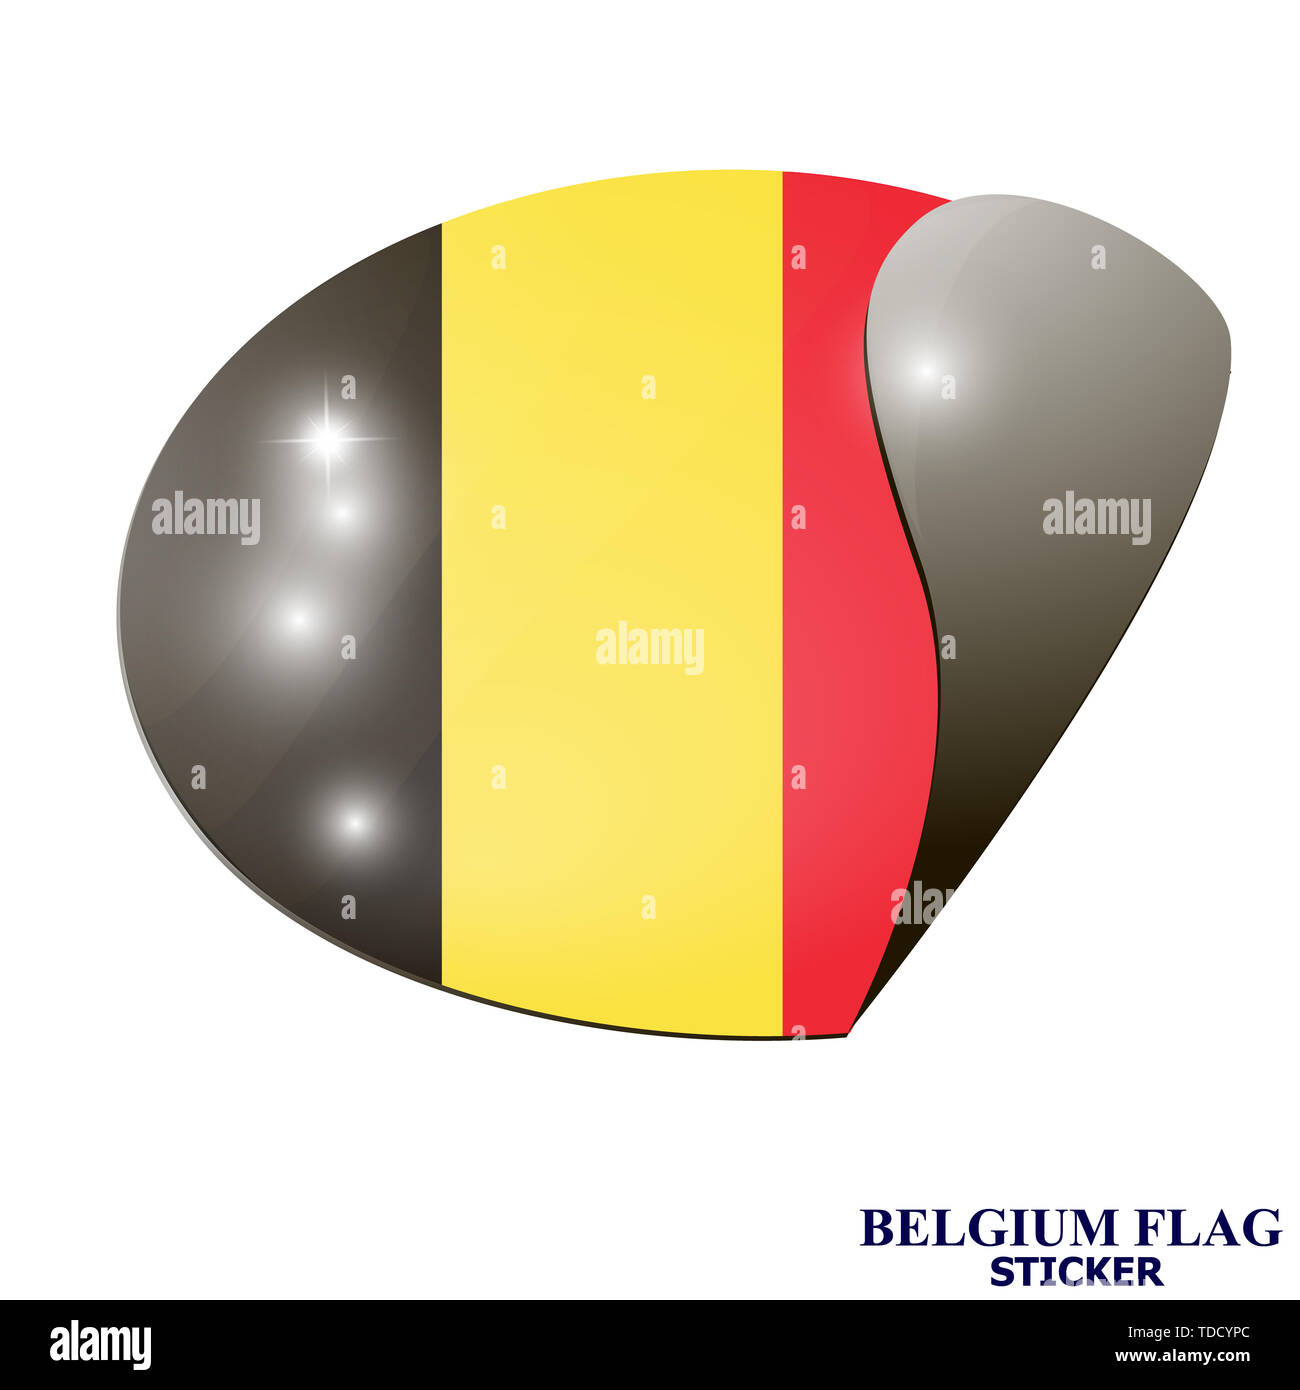 Banner with flag of Belgium. Colorful illustration with flags for web design. Illustration with white background. - Stock Image